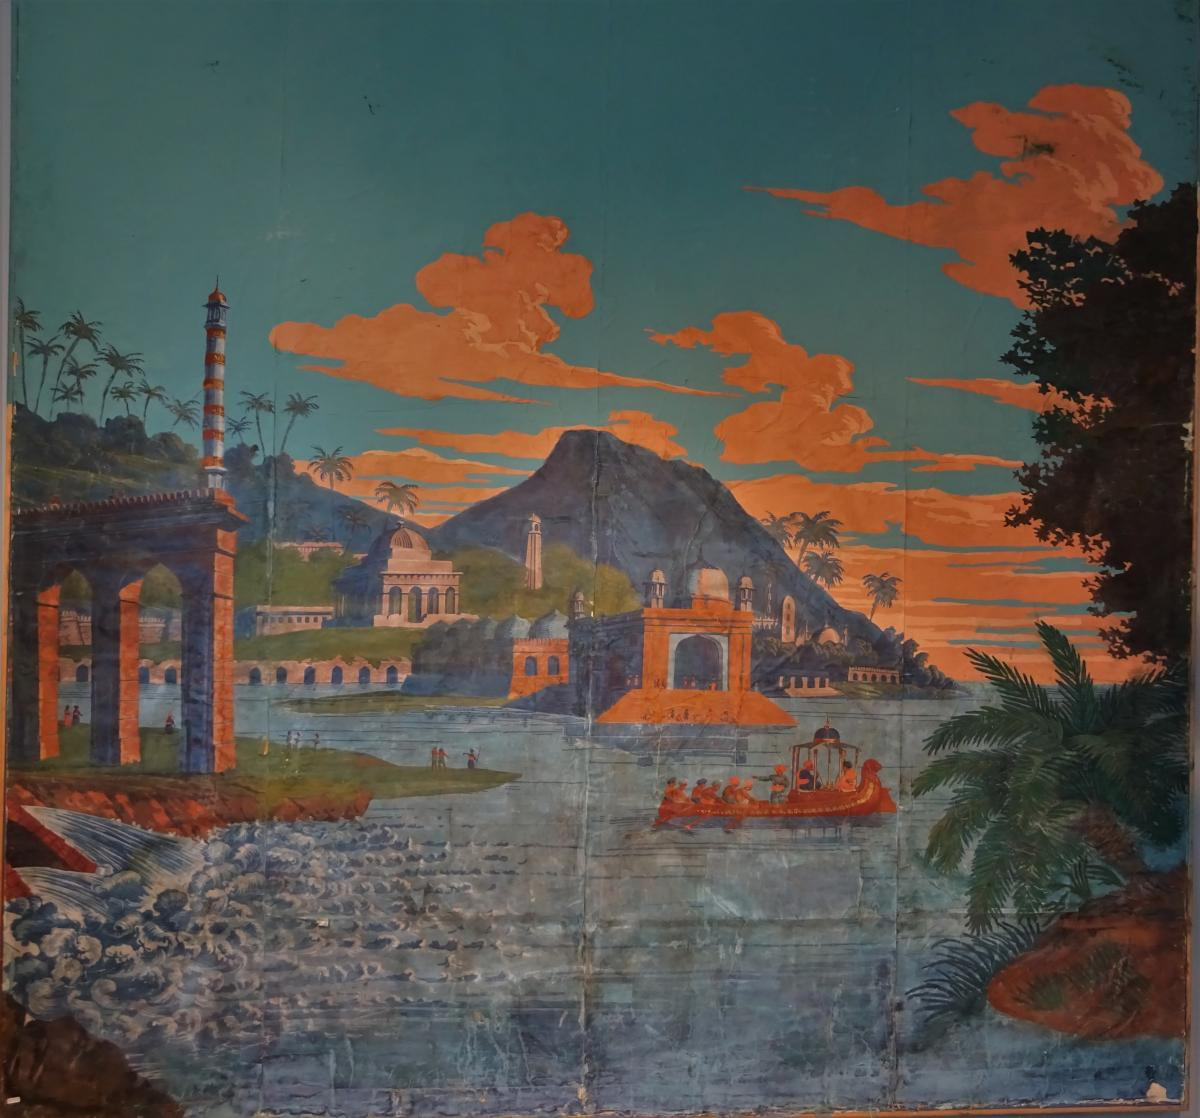 Wallpaper Painted On Canvas, Mid 19th Century